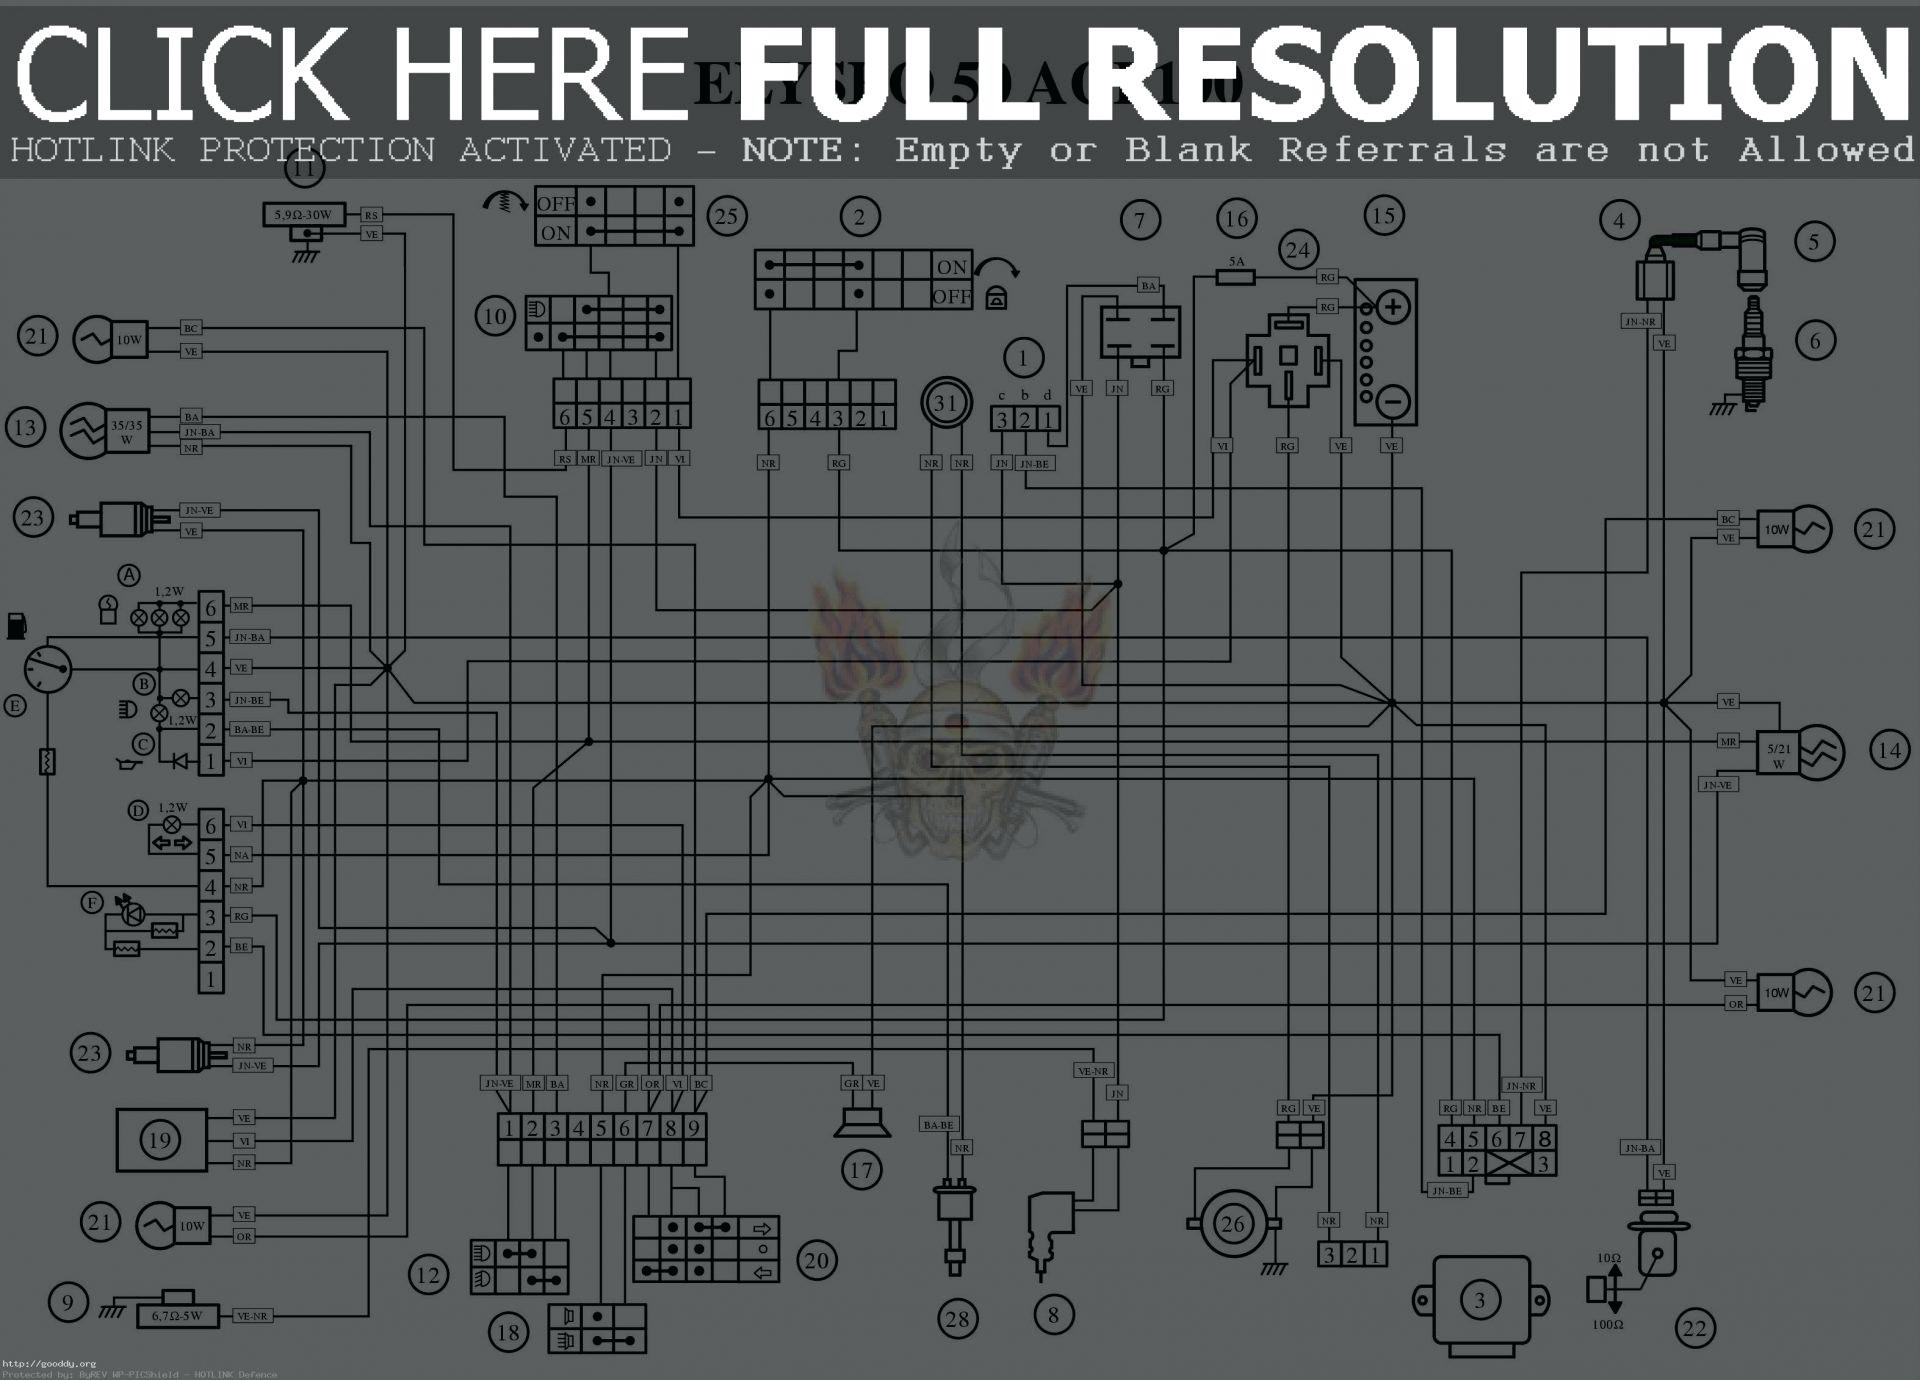 Peugeot 206 engine diagram peugeot engine diagrams 206 hdi diagram peugeot 206 engine diagram peugeot engine diagrams 206 hdi diagram motor wiring sensor location of peugeot asfbconference2016 Gallery